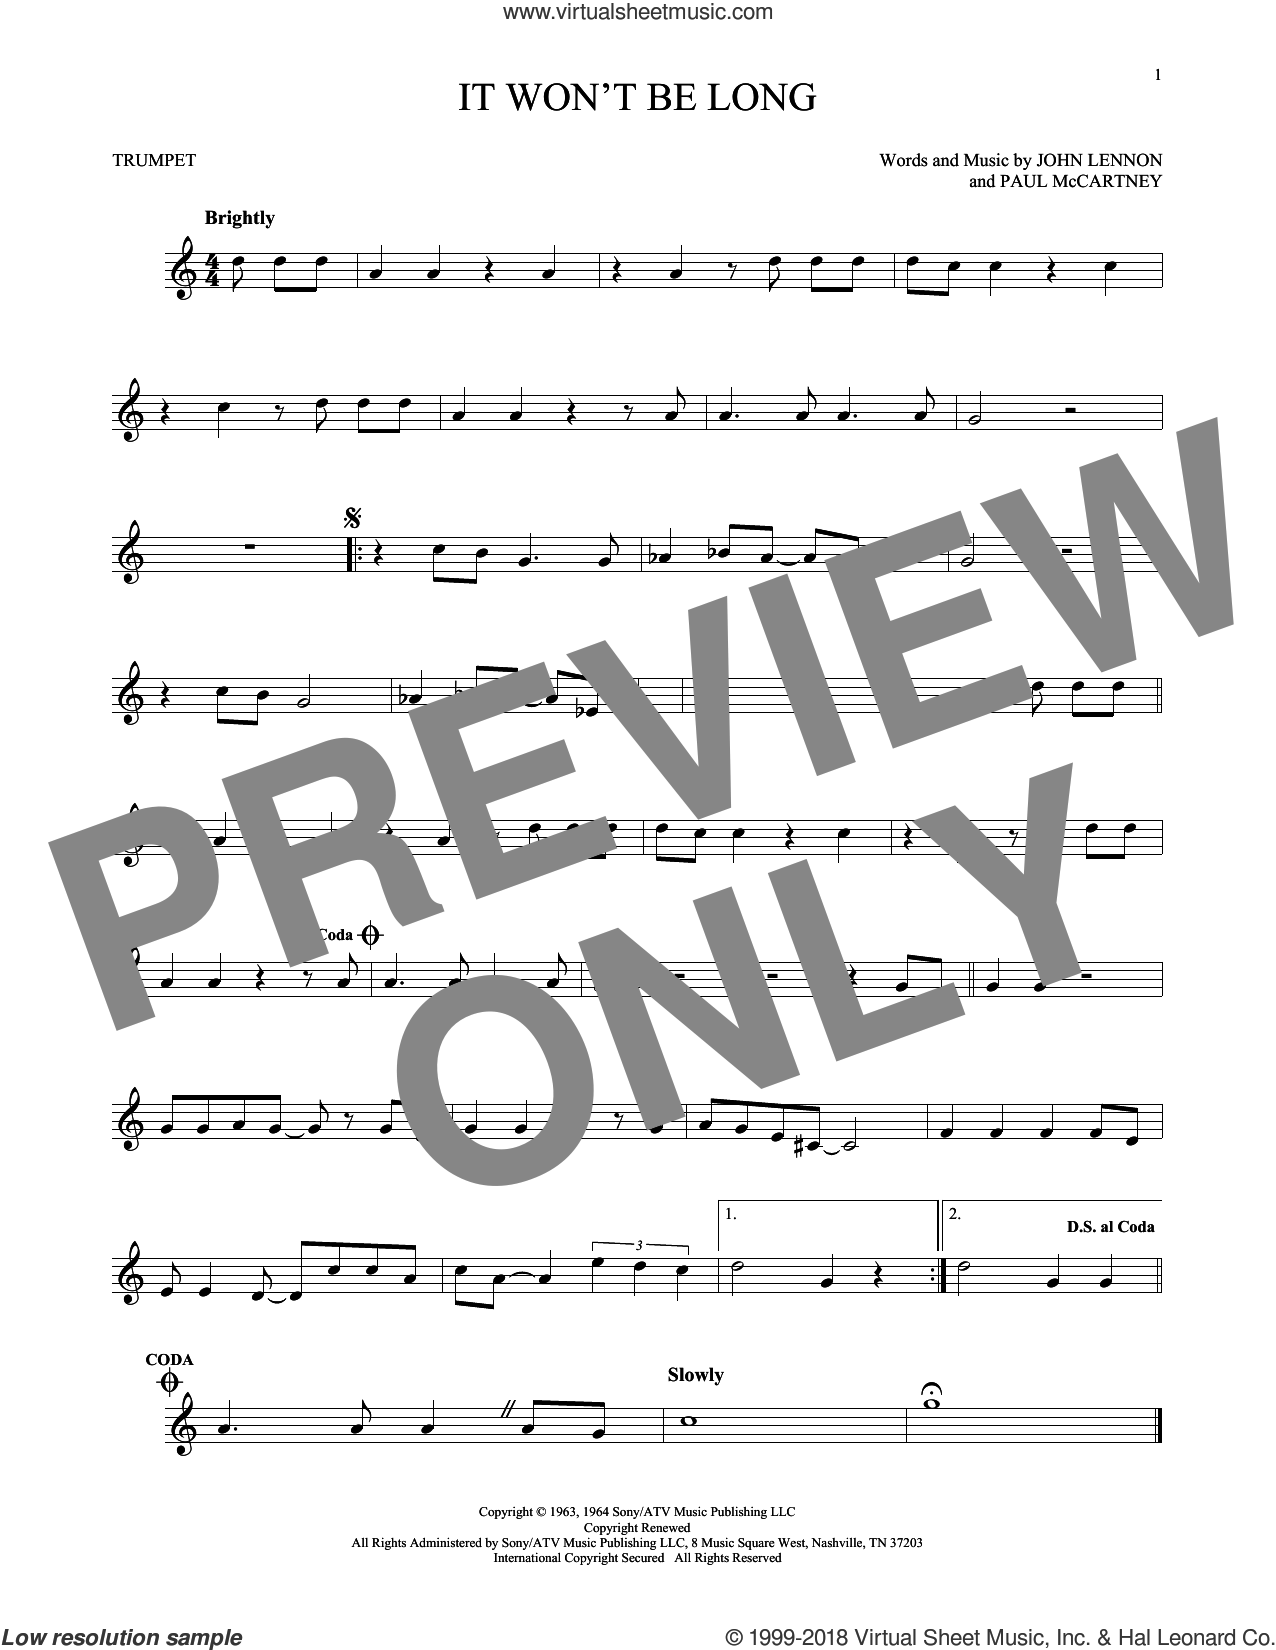 It Won't Be Long sheet music for trumpet solo by The Beatles, John Lennon and Paul McCartney, intermediate skill level